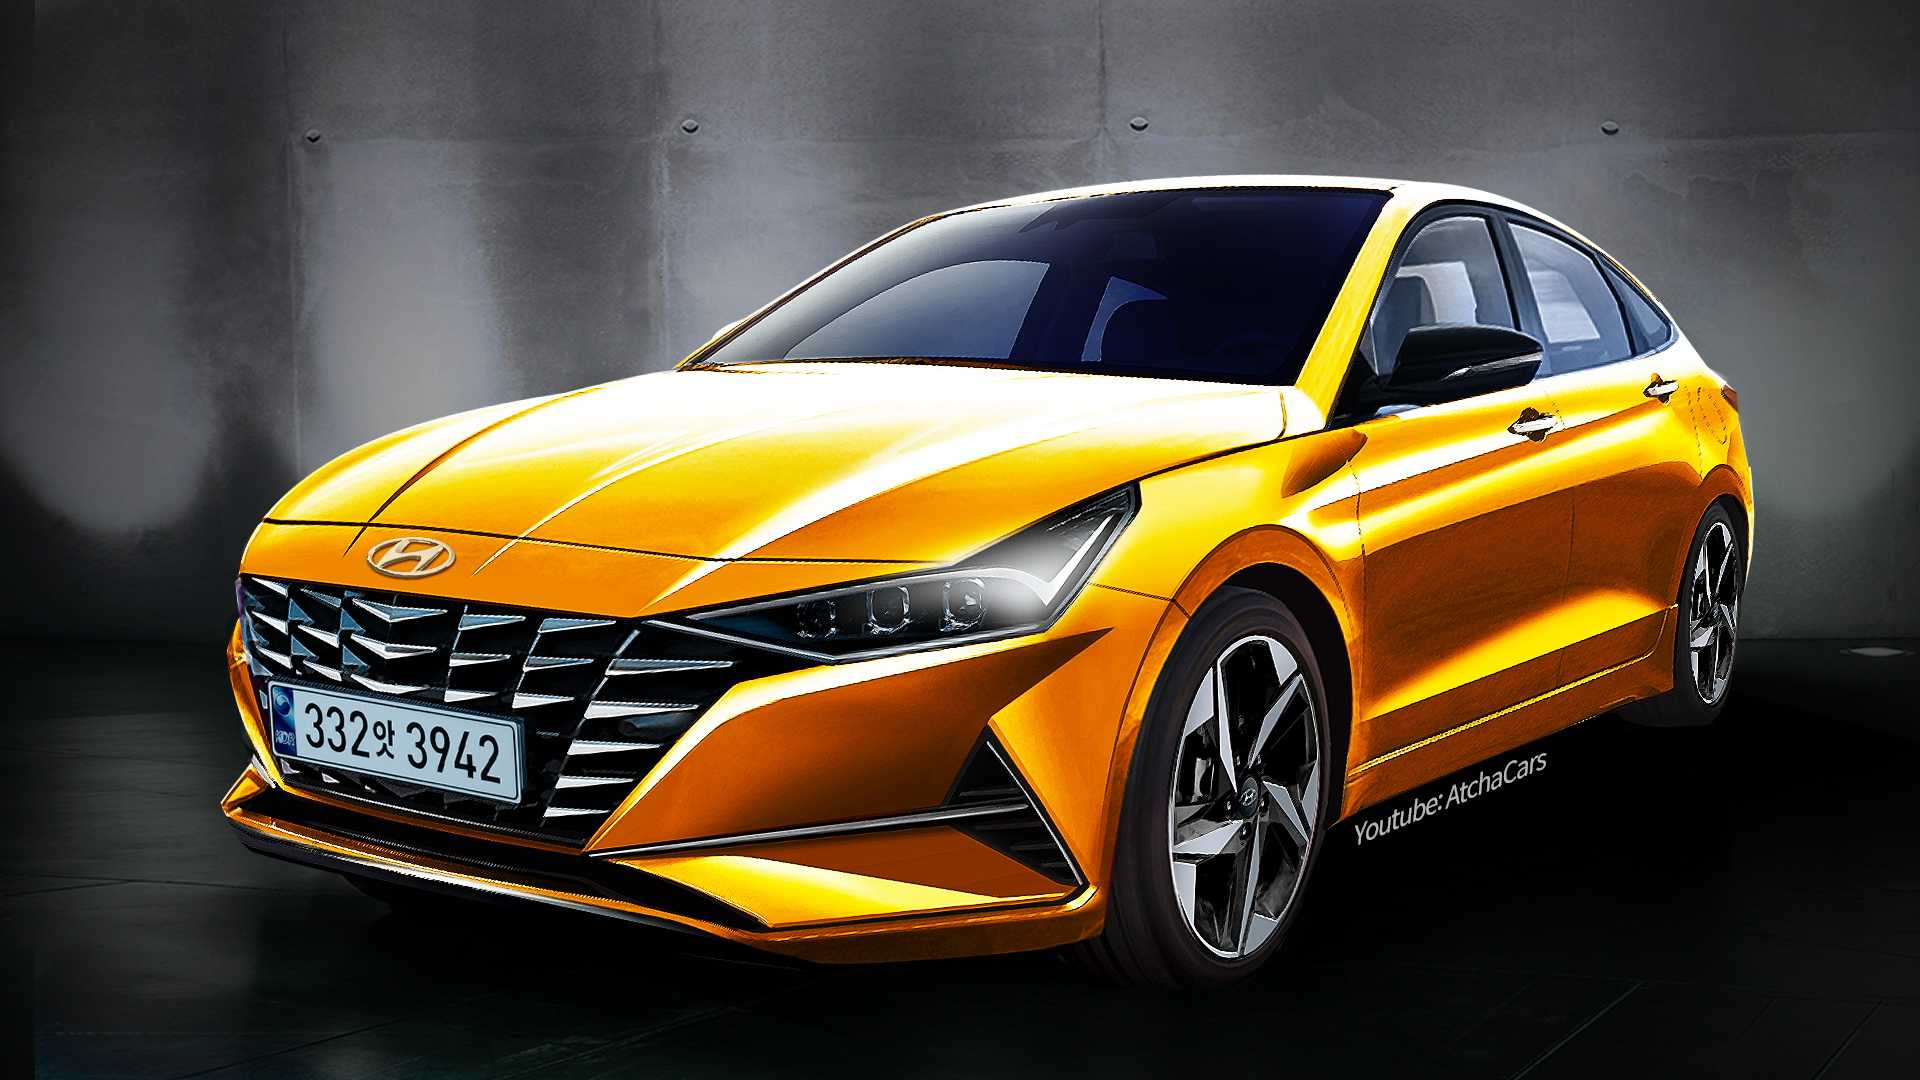 Next-Generation Hyundai Elantra Rendered With Sharp Look